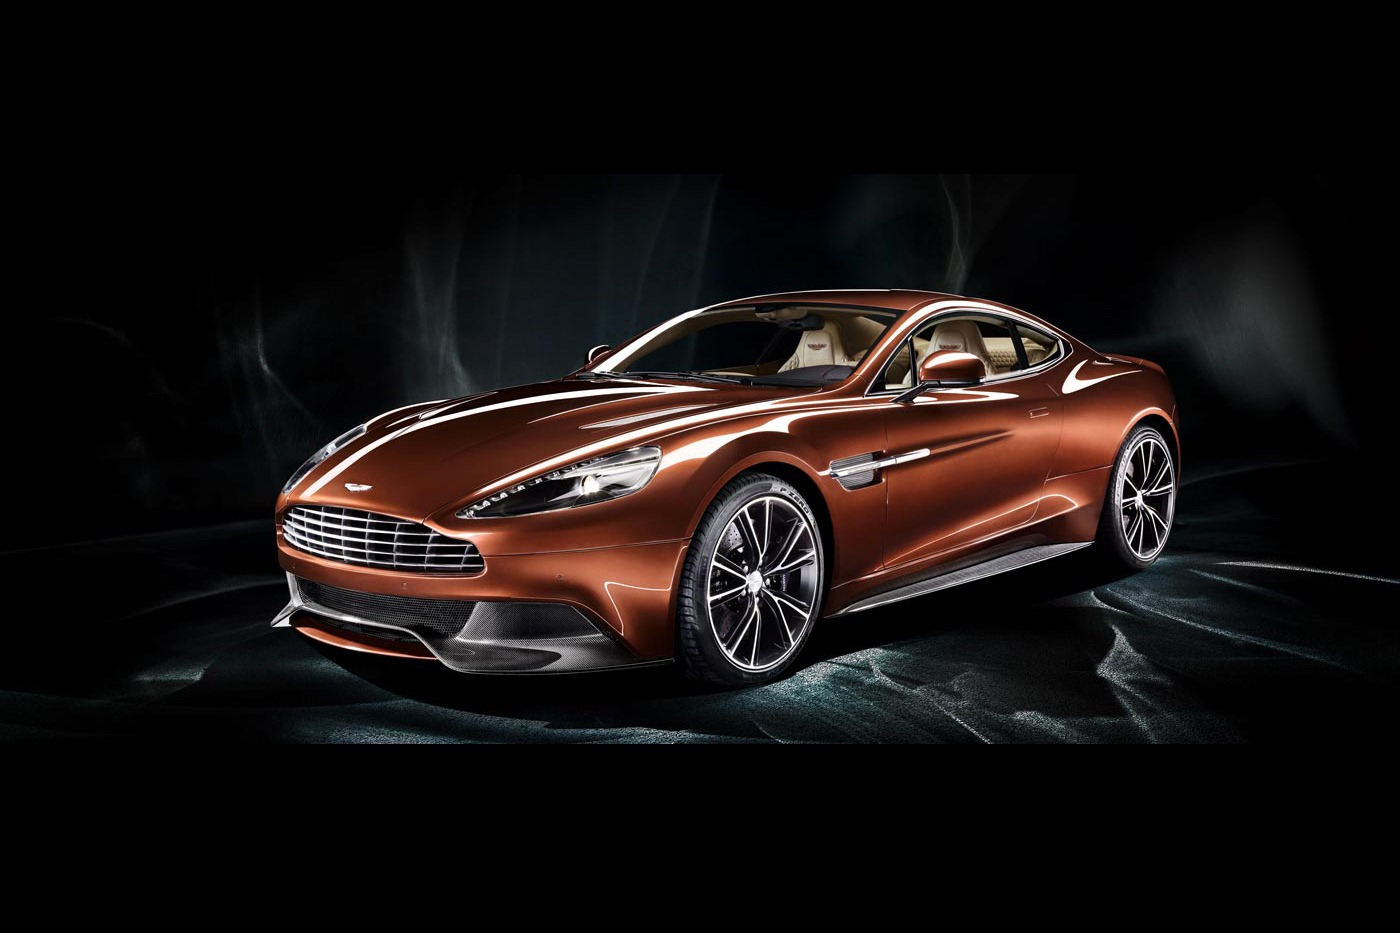 aston martin vanquish images 1 world of cars. Black Bedroom Furniture Sets. Home Design Ideas